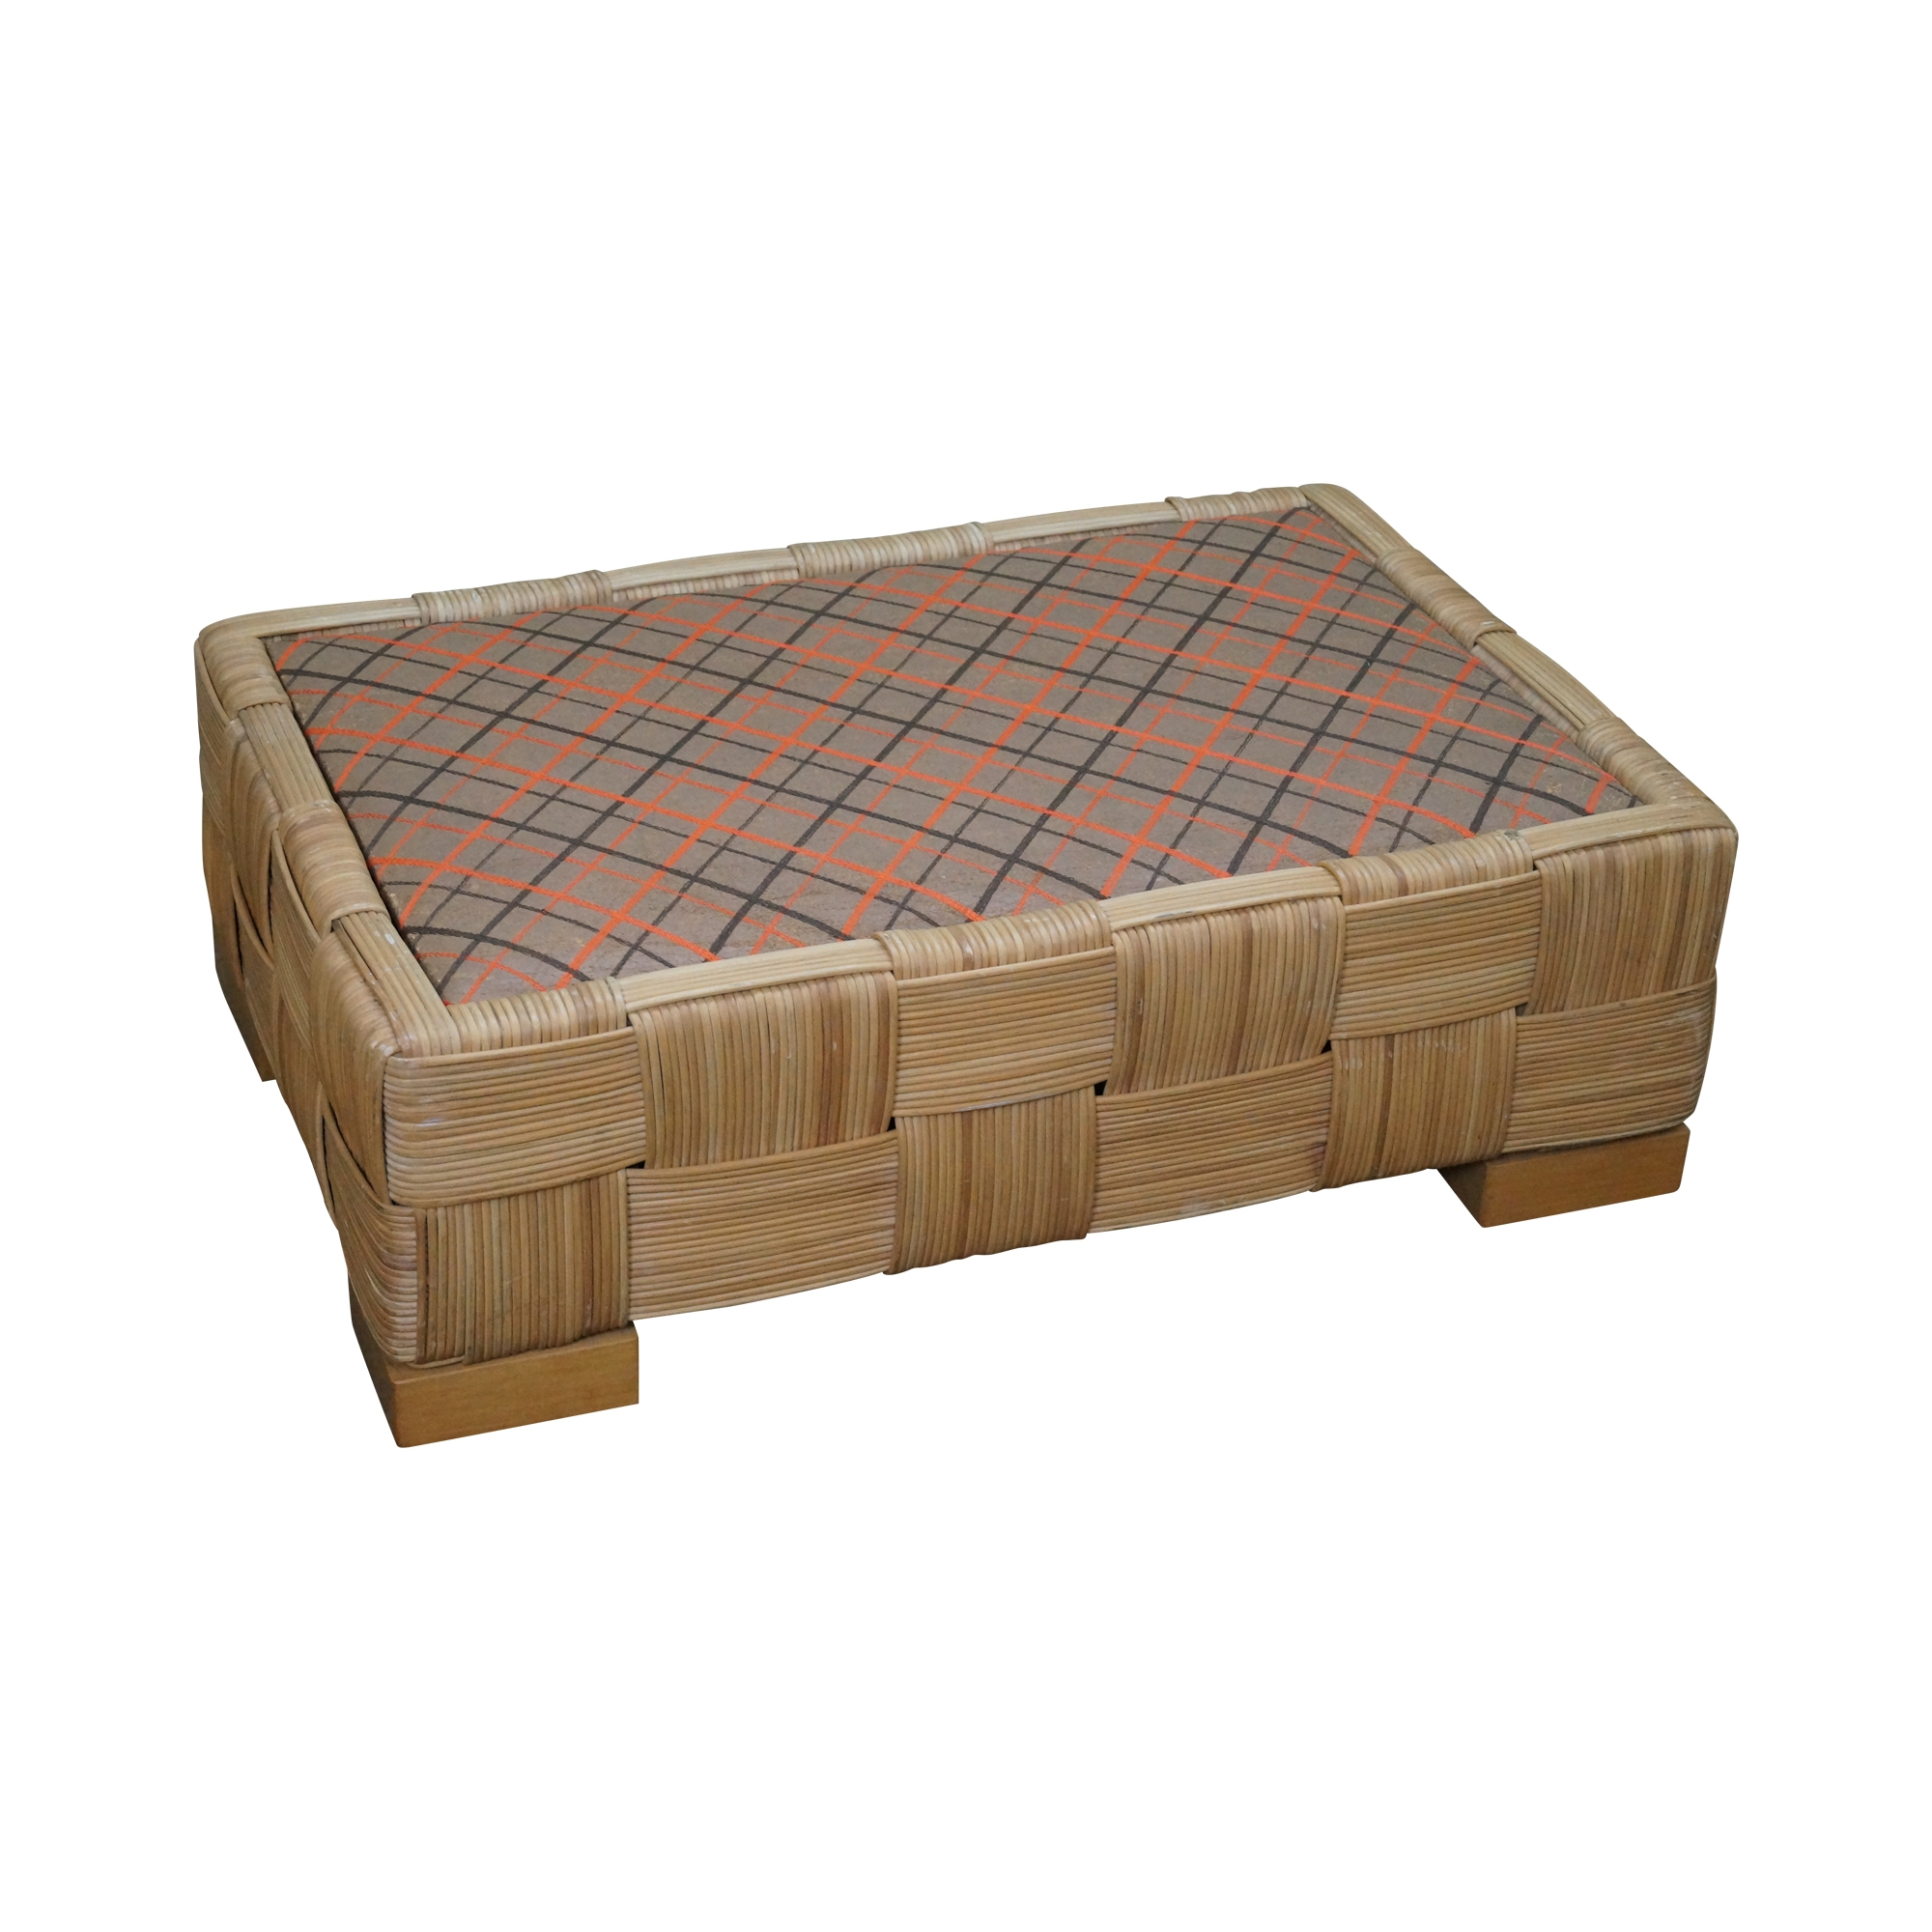 Decorating: Sophisticated Rattan Ottoman For Home Inspirations with regard to Round Woven Coffee Tables (Image 12 of 30)